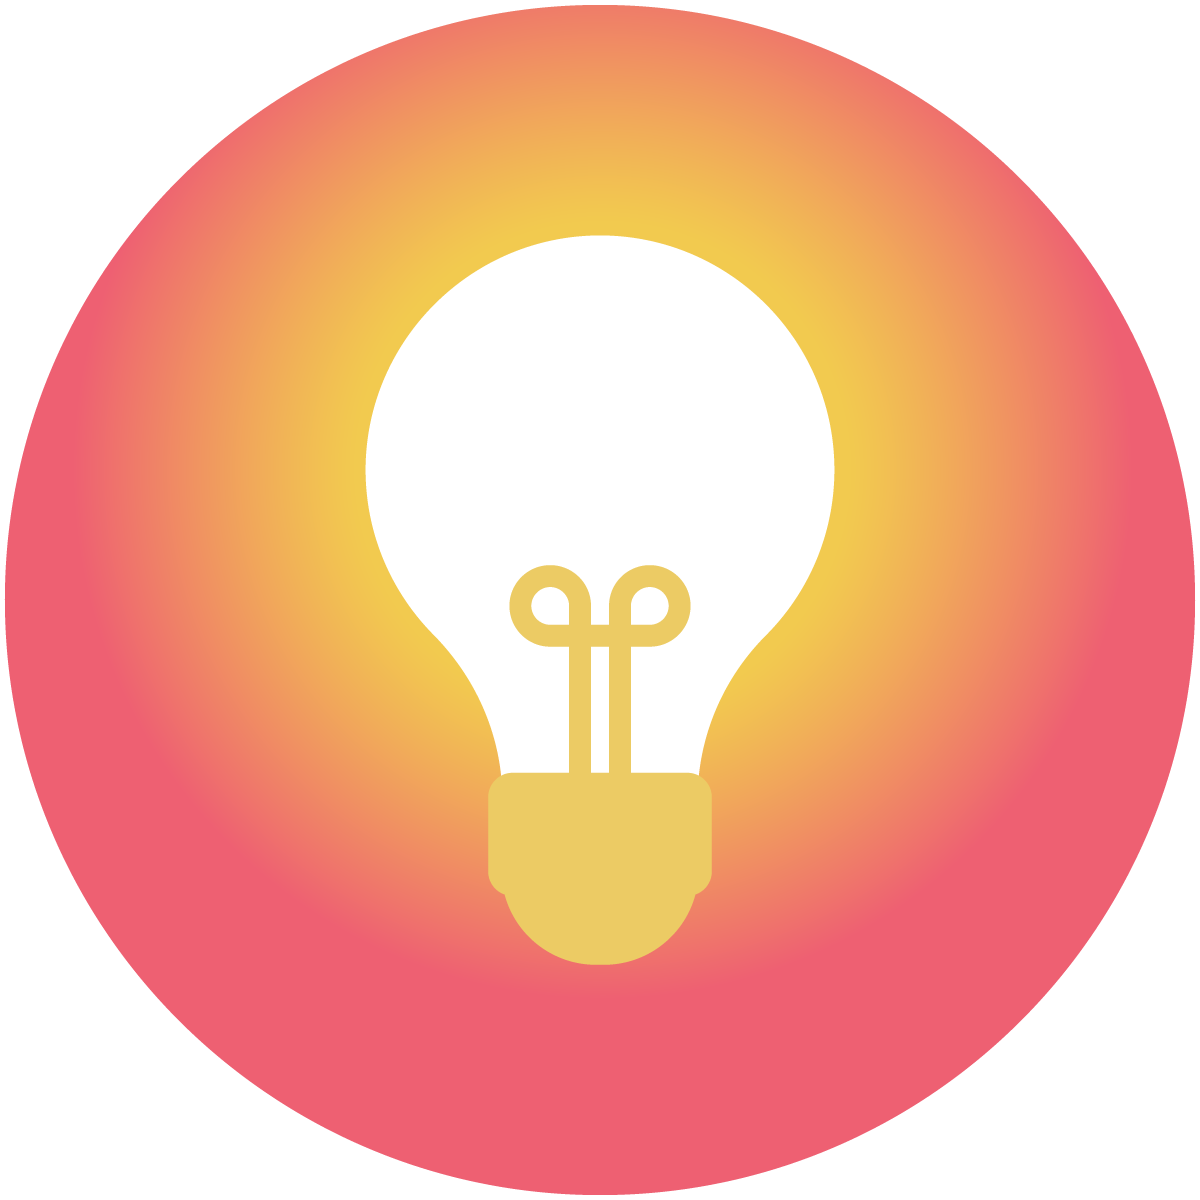 A light bulb symbol on top of a warm orange circle shows how the chatbot learns by listening to questions from users.